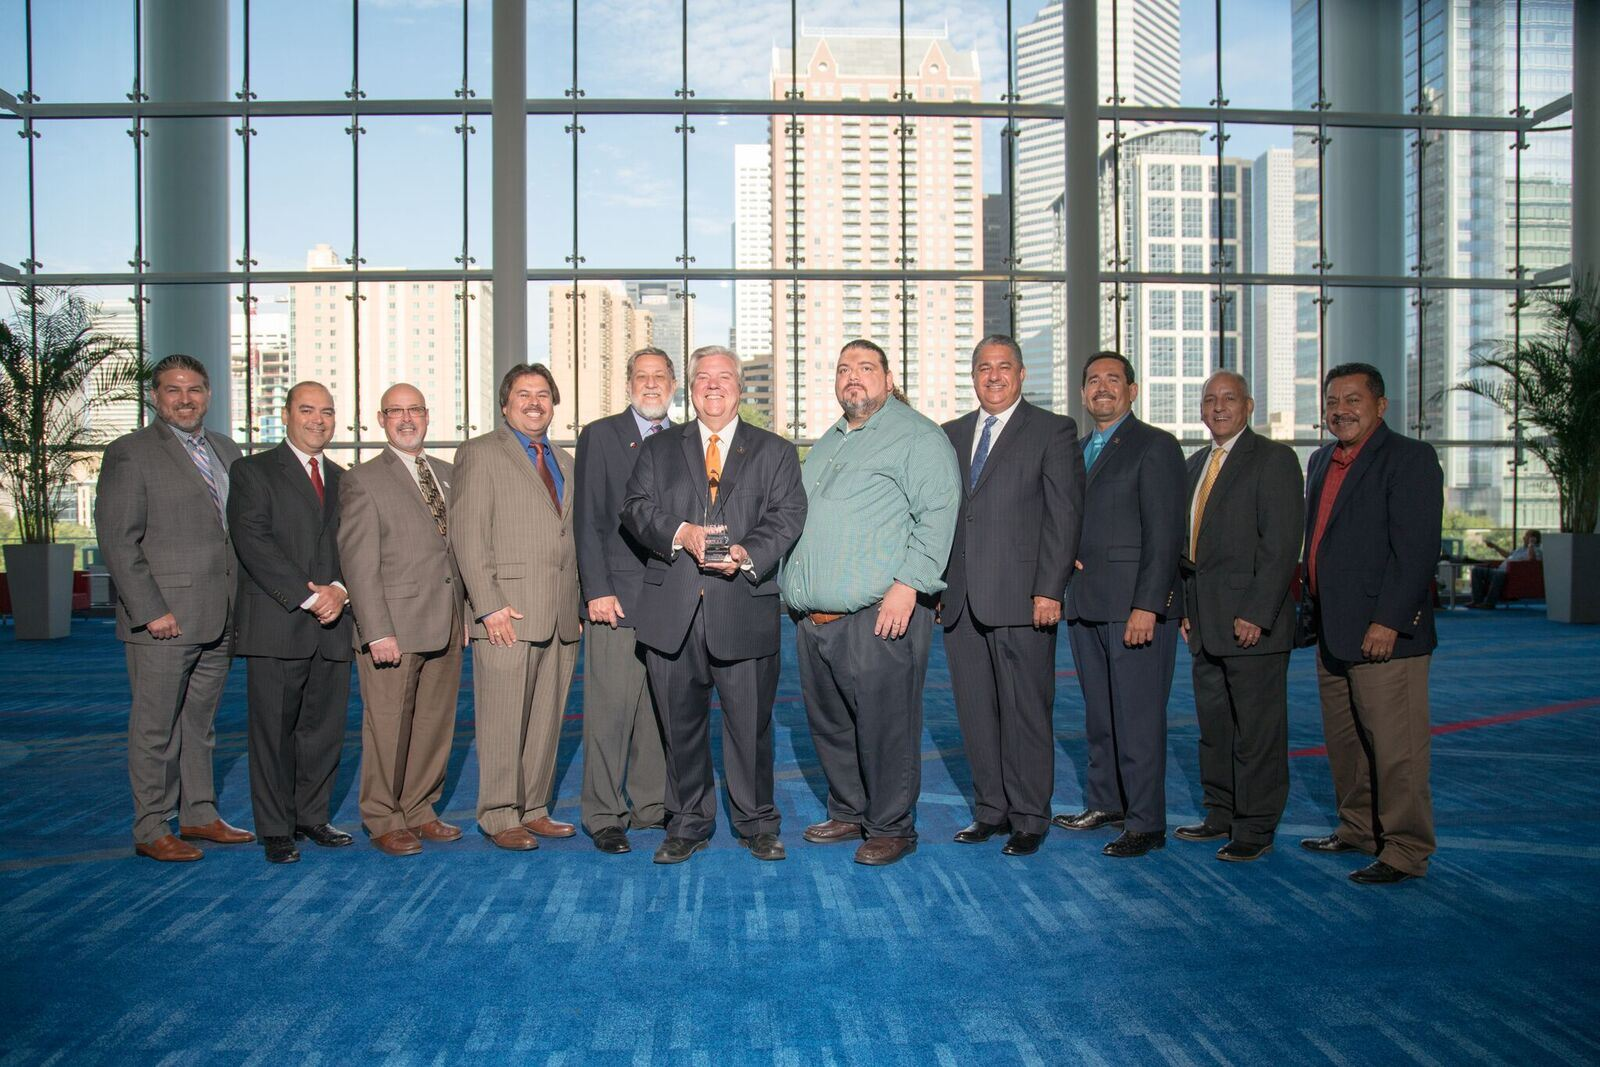 11 Harlingen employees together with one holding award at event